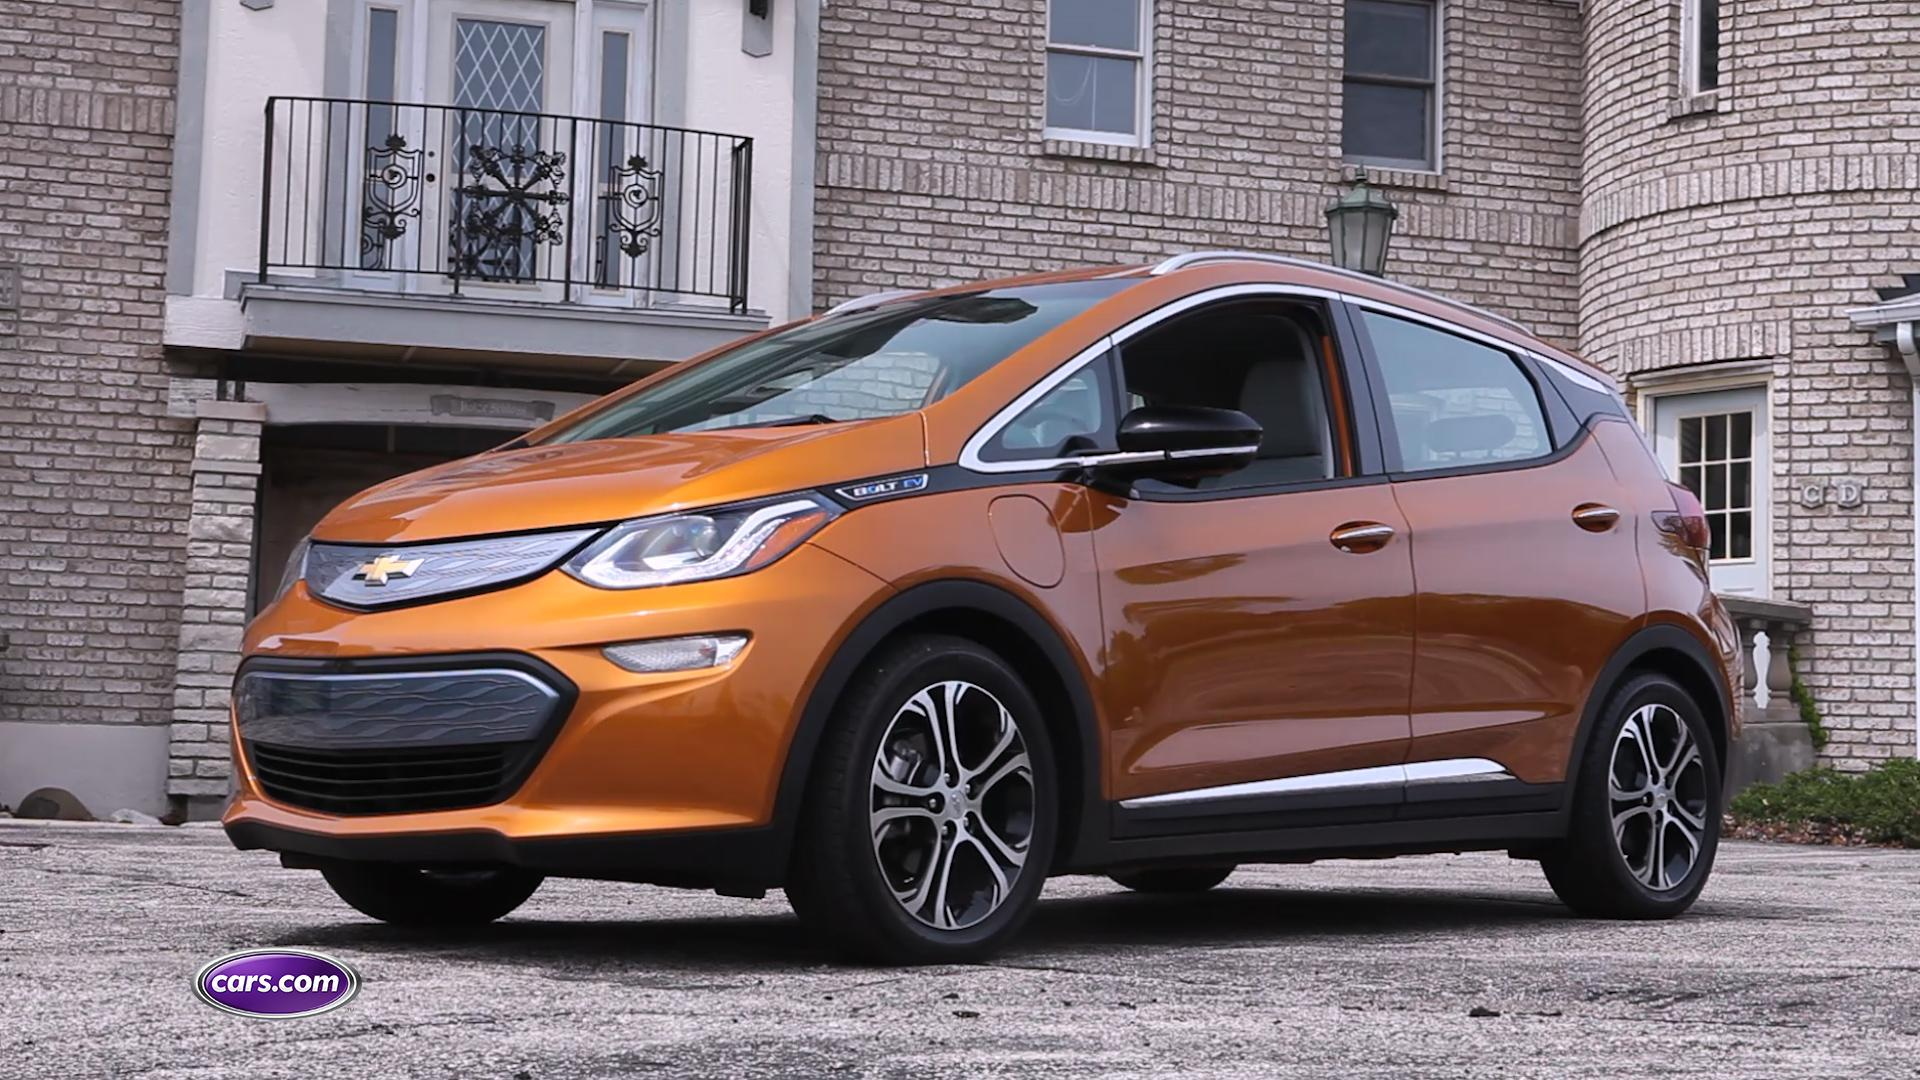 Chevrolet's new electric car is a milestone in the segment, setting the bar for range, price, features and comfort. The Bolt EV has electric-car looks but drives a lot like a regular car — with just a few exceptions. Watch the video for more.